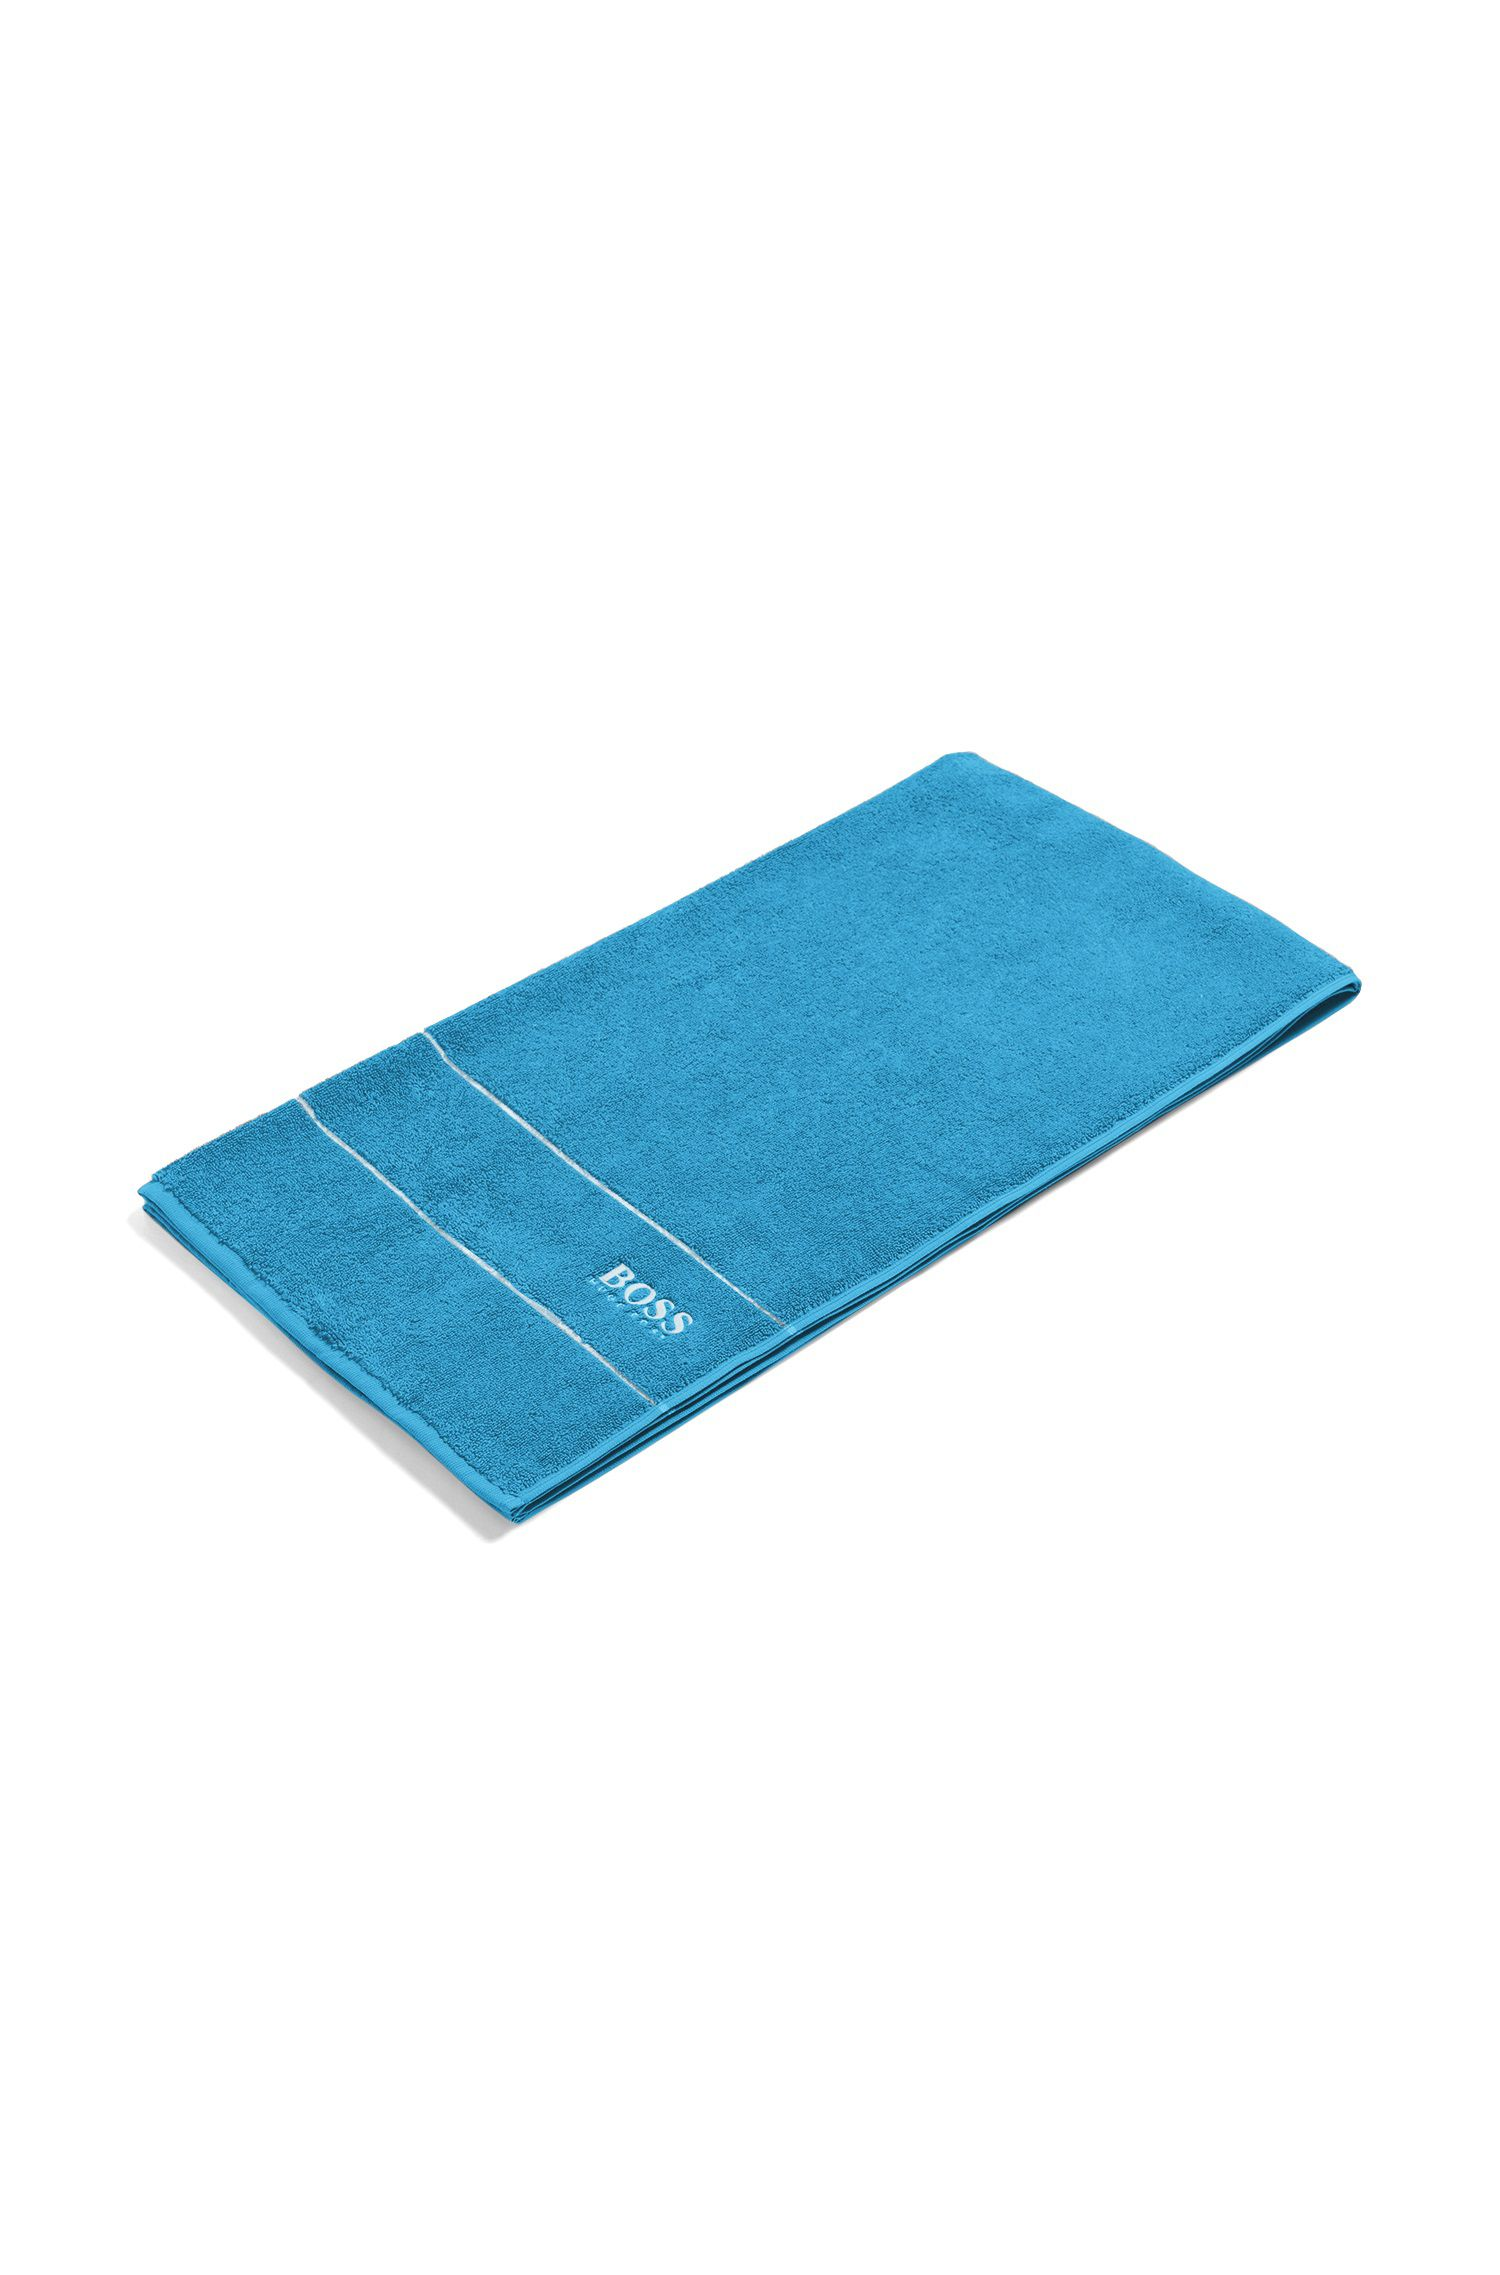 Serviette de toilette « PLAIN Serviette douch »